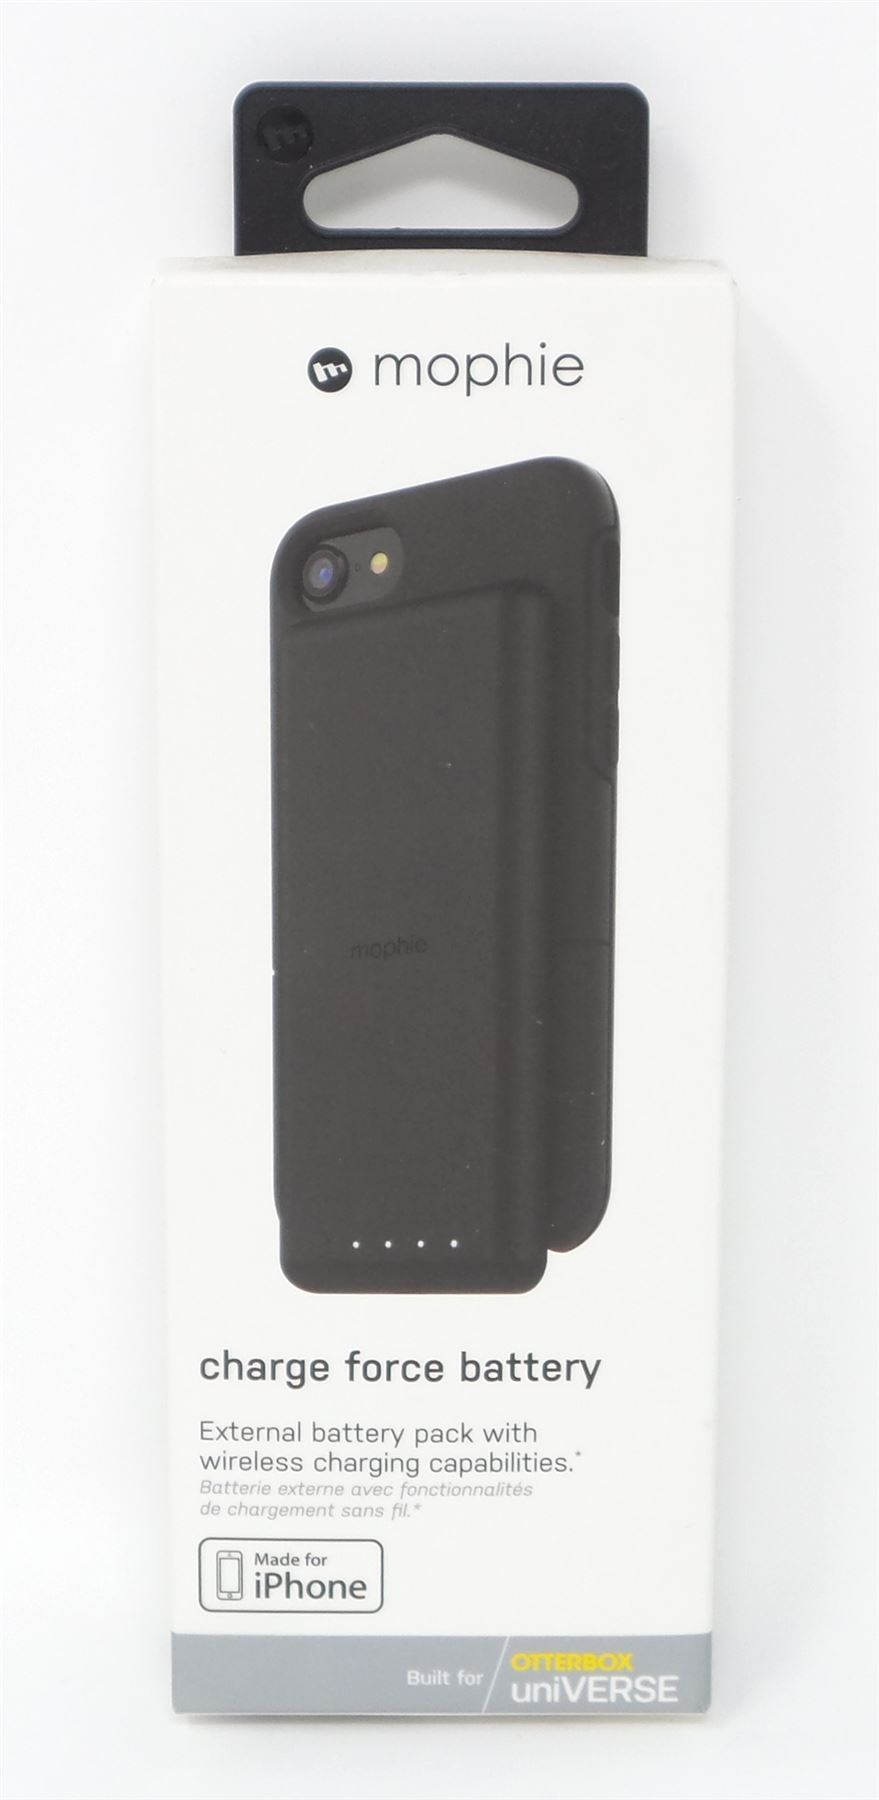 buy popular 231ba 411c9 Details about Mophie Charge Force Battery External Battery for OtterBox  Universe Black New